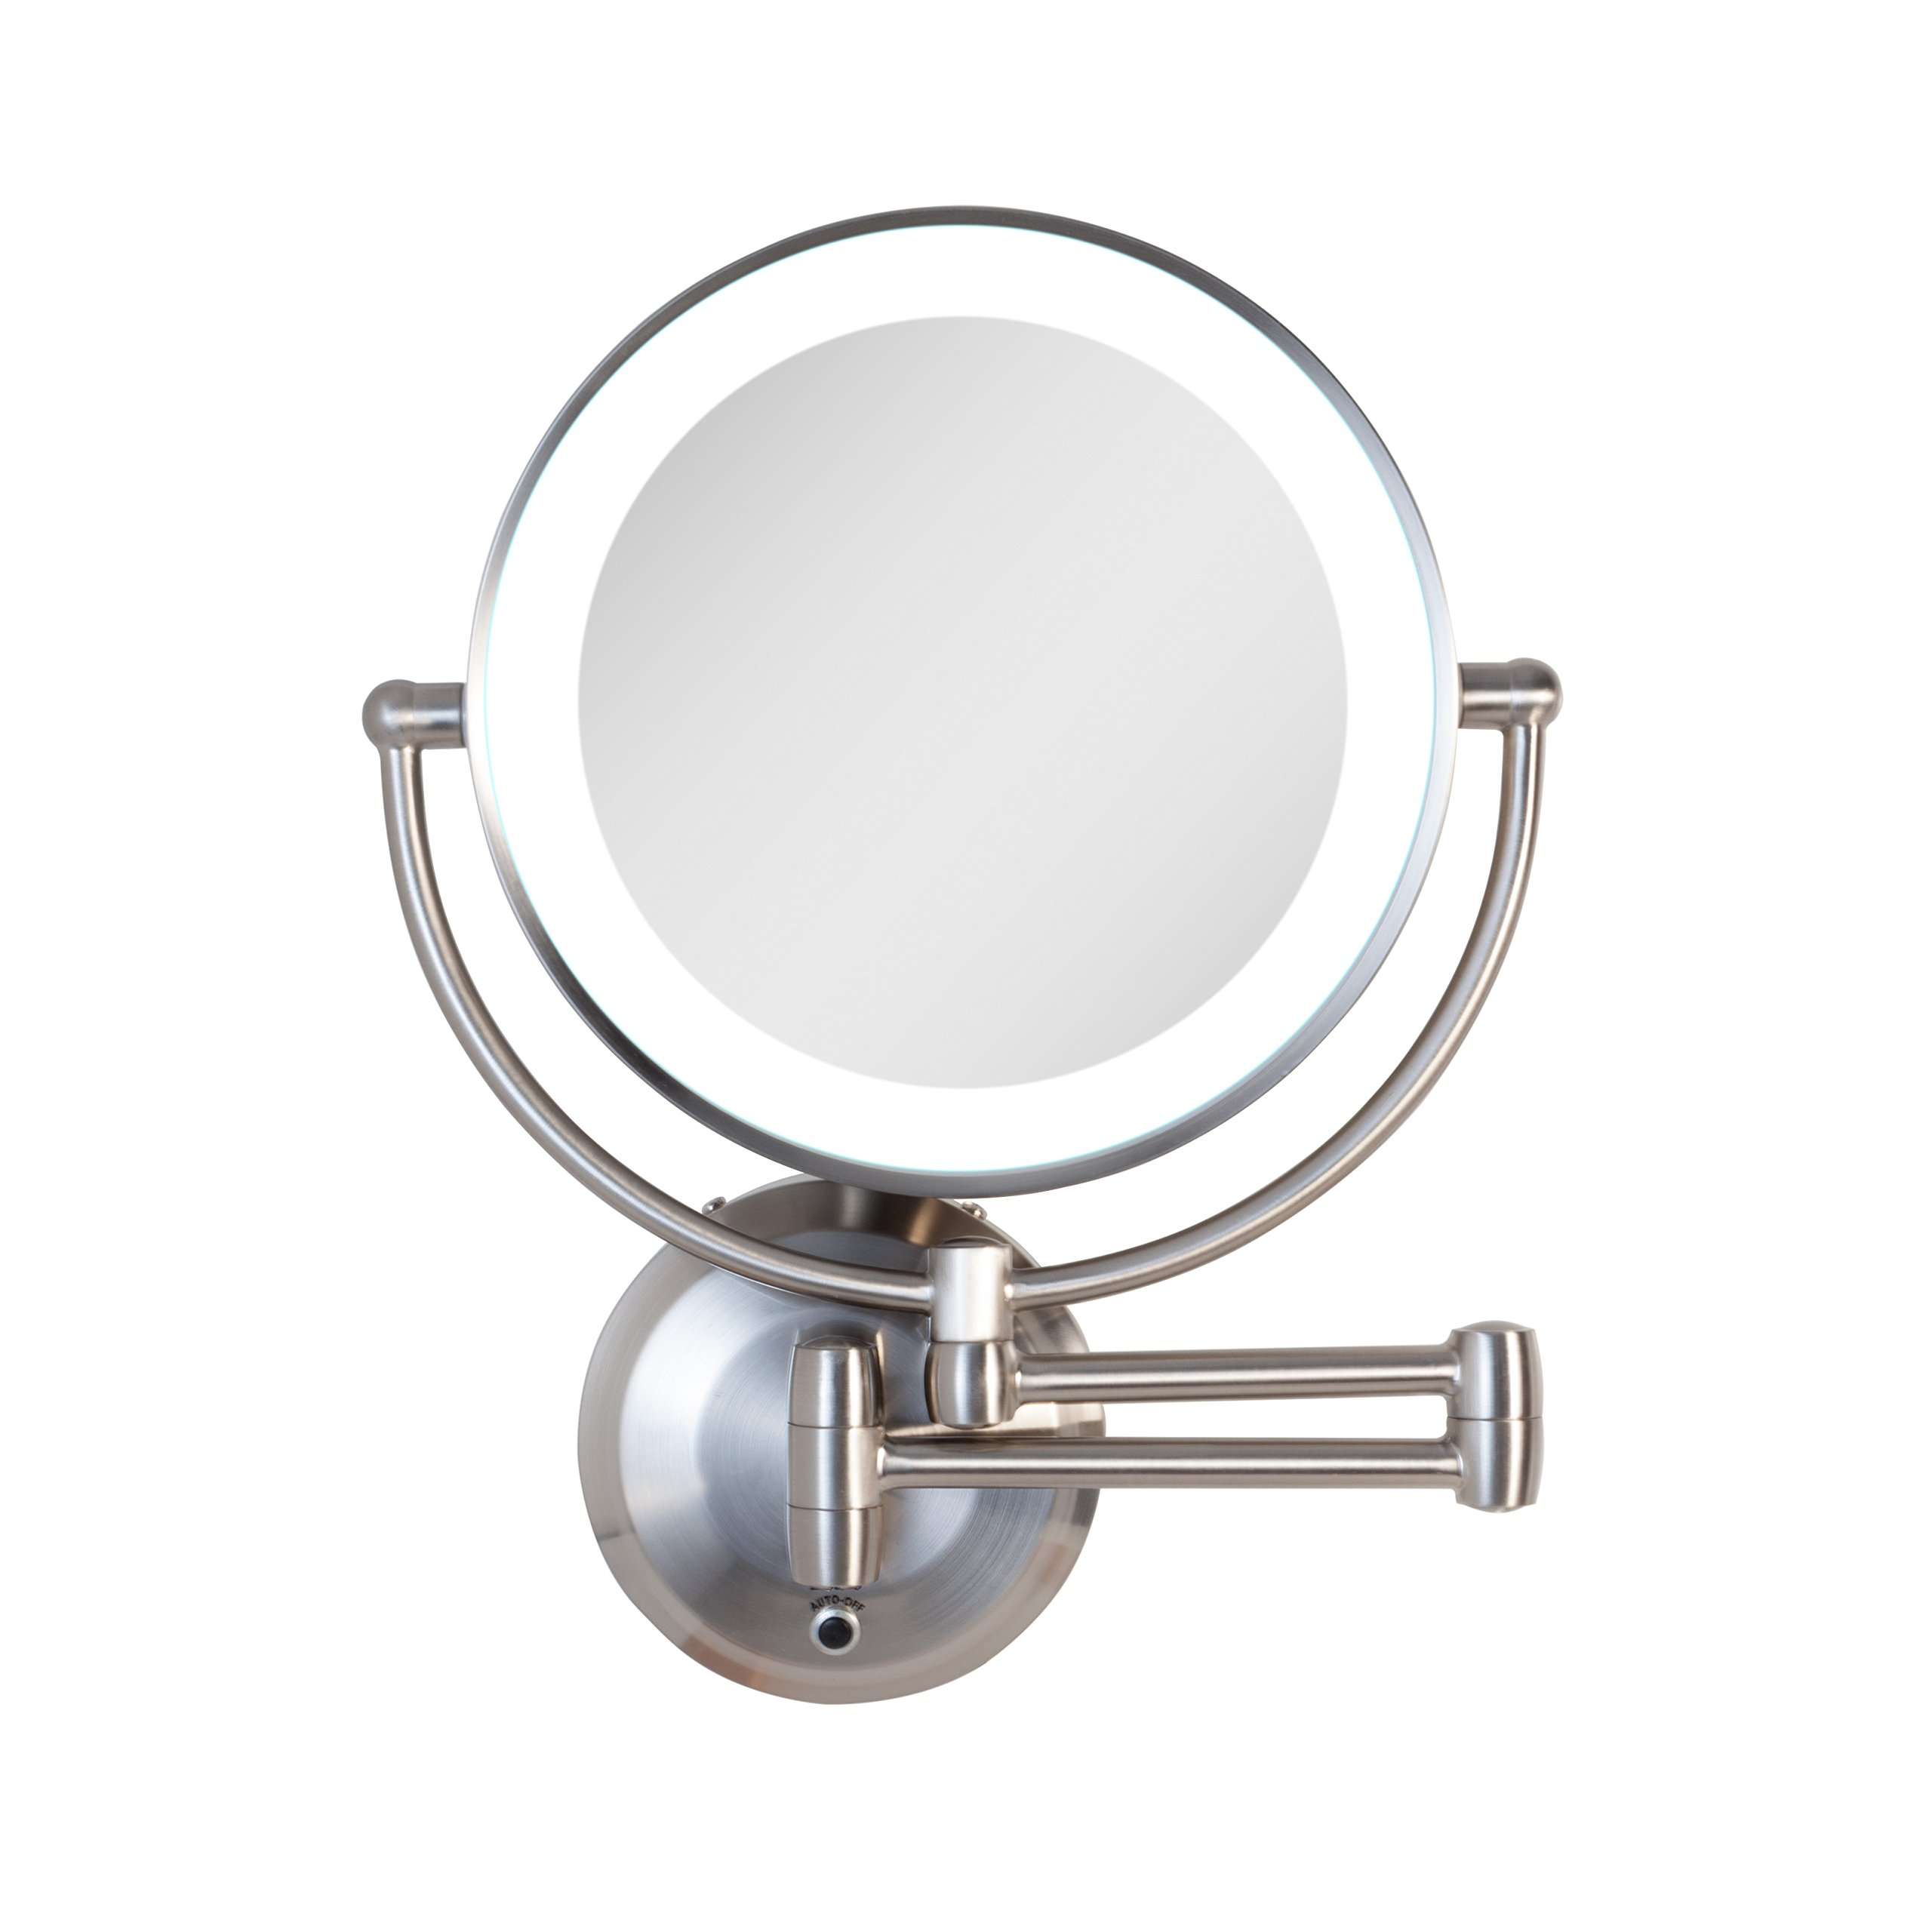 Zadro Cordless Dual LED Lighted Round Wall Mount Mirror with 1X & 5X magnification and 5 minute Auto Off Timer in Satin Nickel Finish